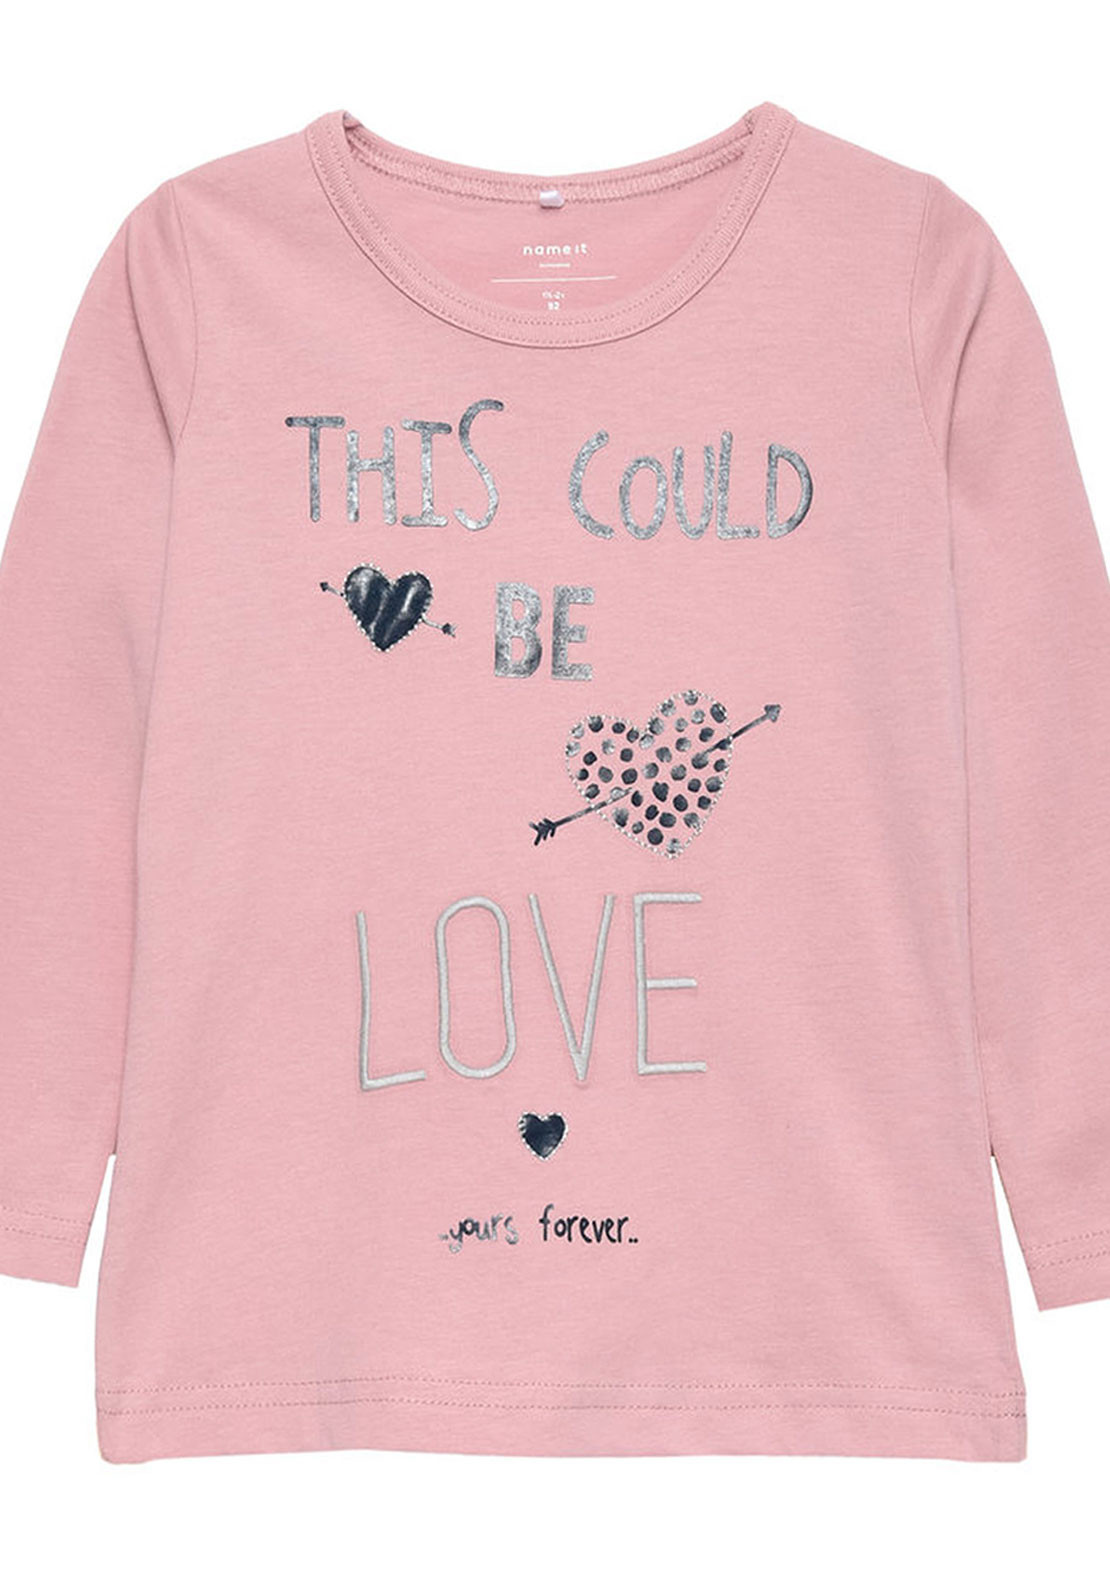 Name It Mini Girls Frida Love Top, Pink